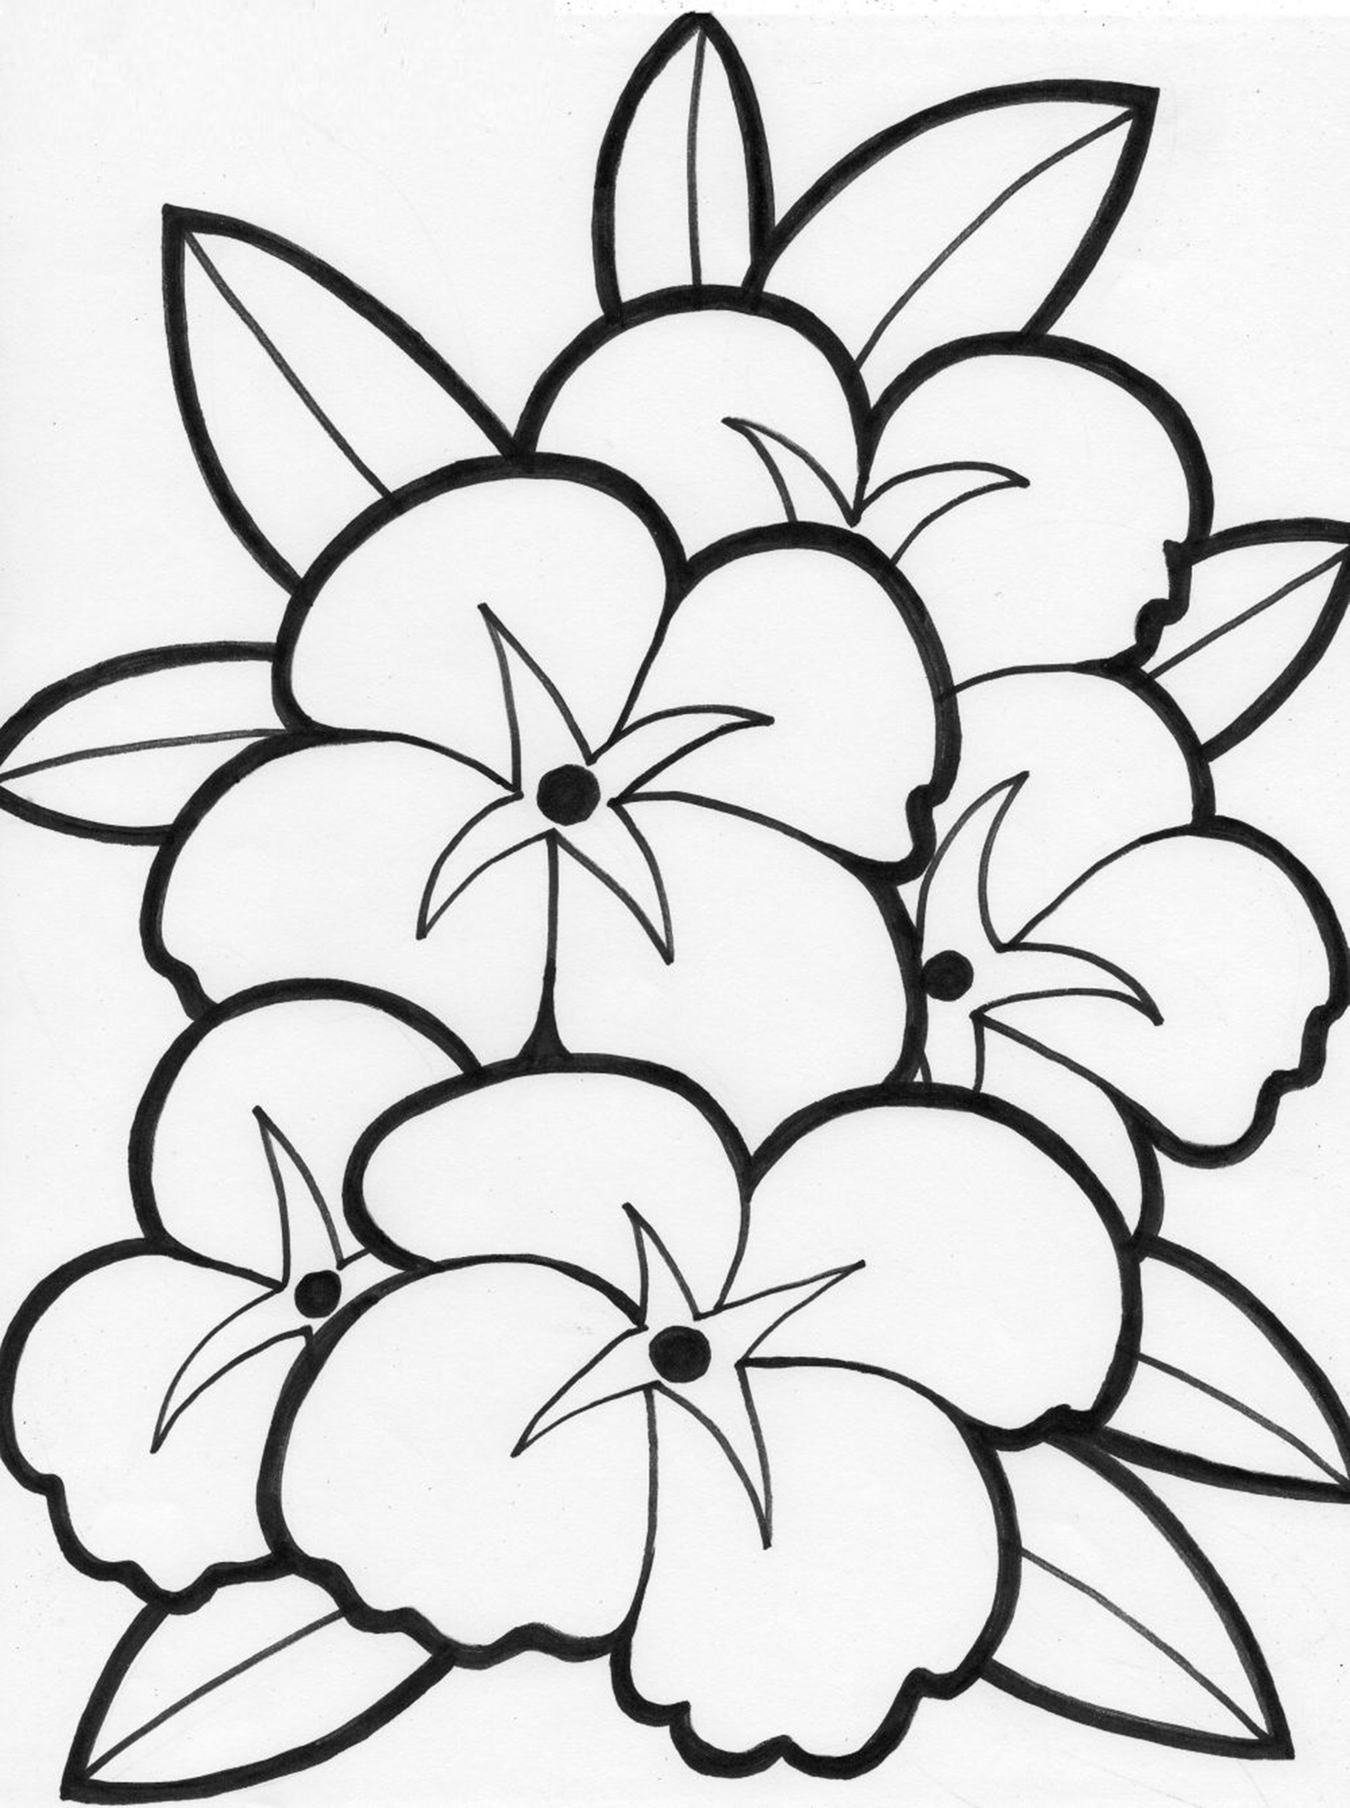 flower coloring pages free printable flowers to download for free flowers kids coloring pages coloring free printable flower pages